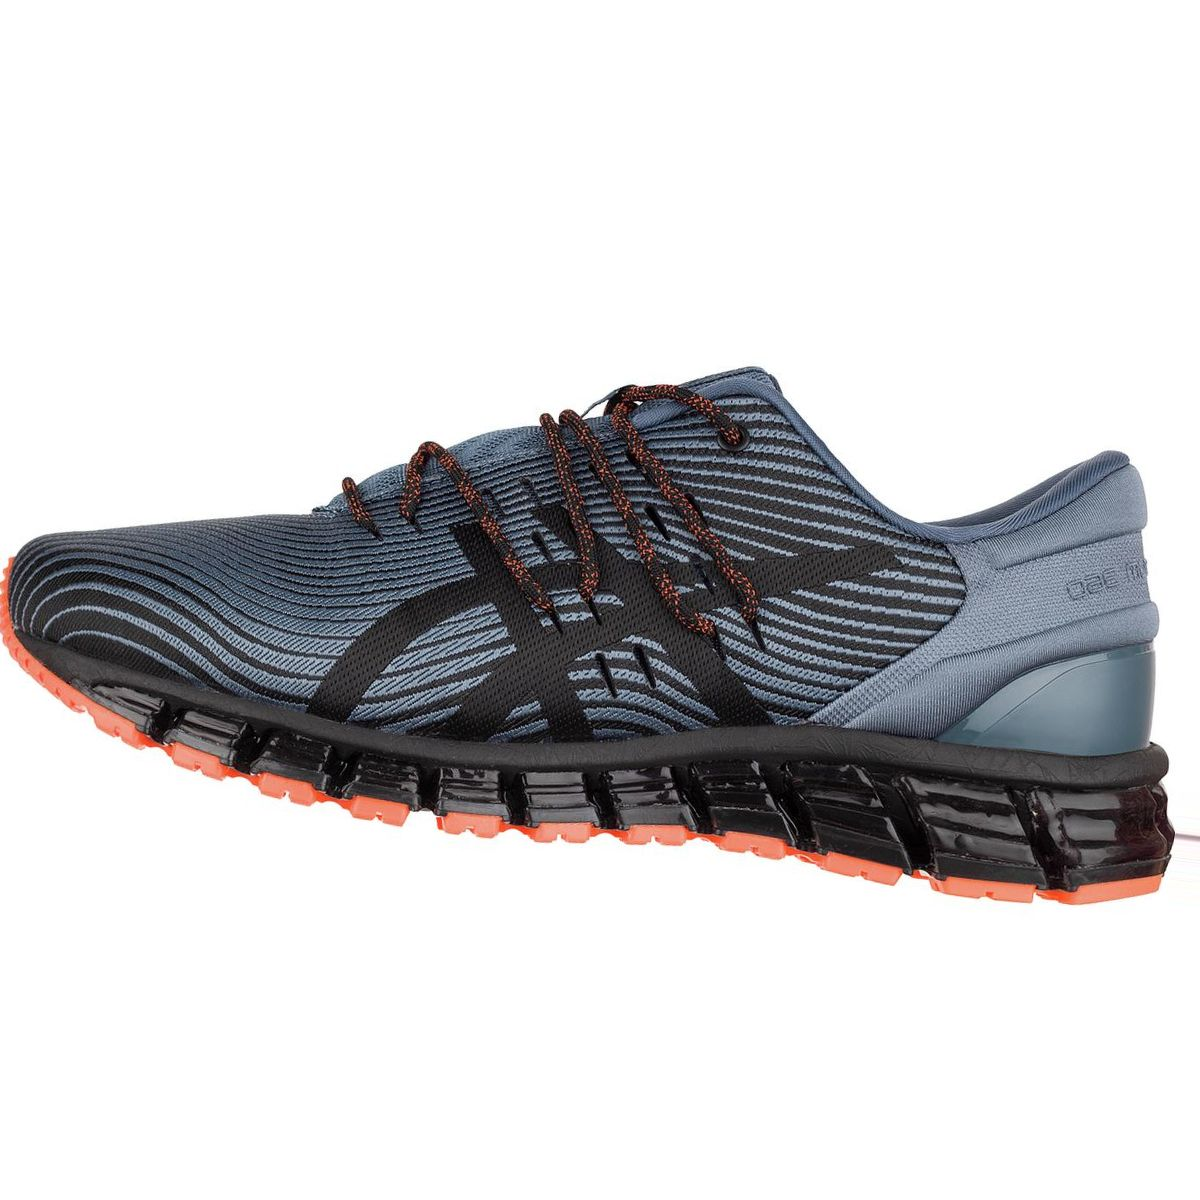 Asics Gel-Quantum 360 4 Running Shoe - Men's